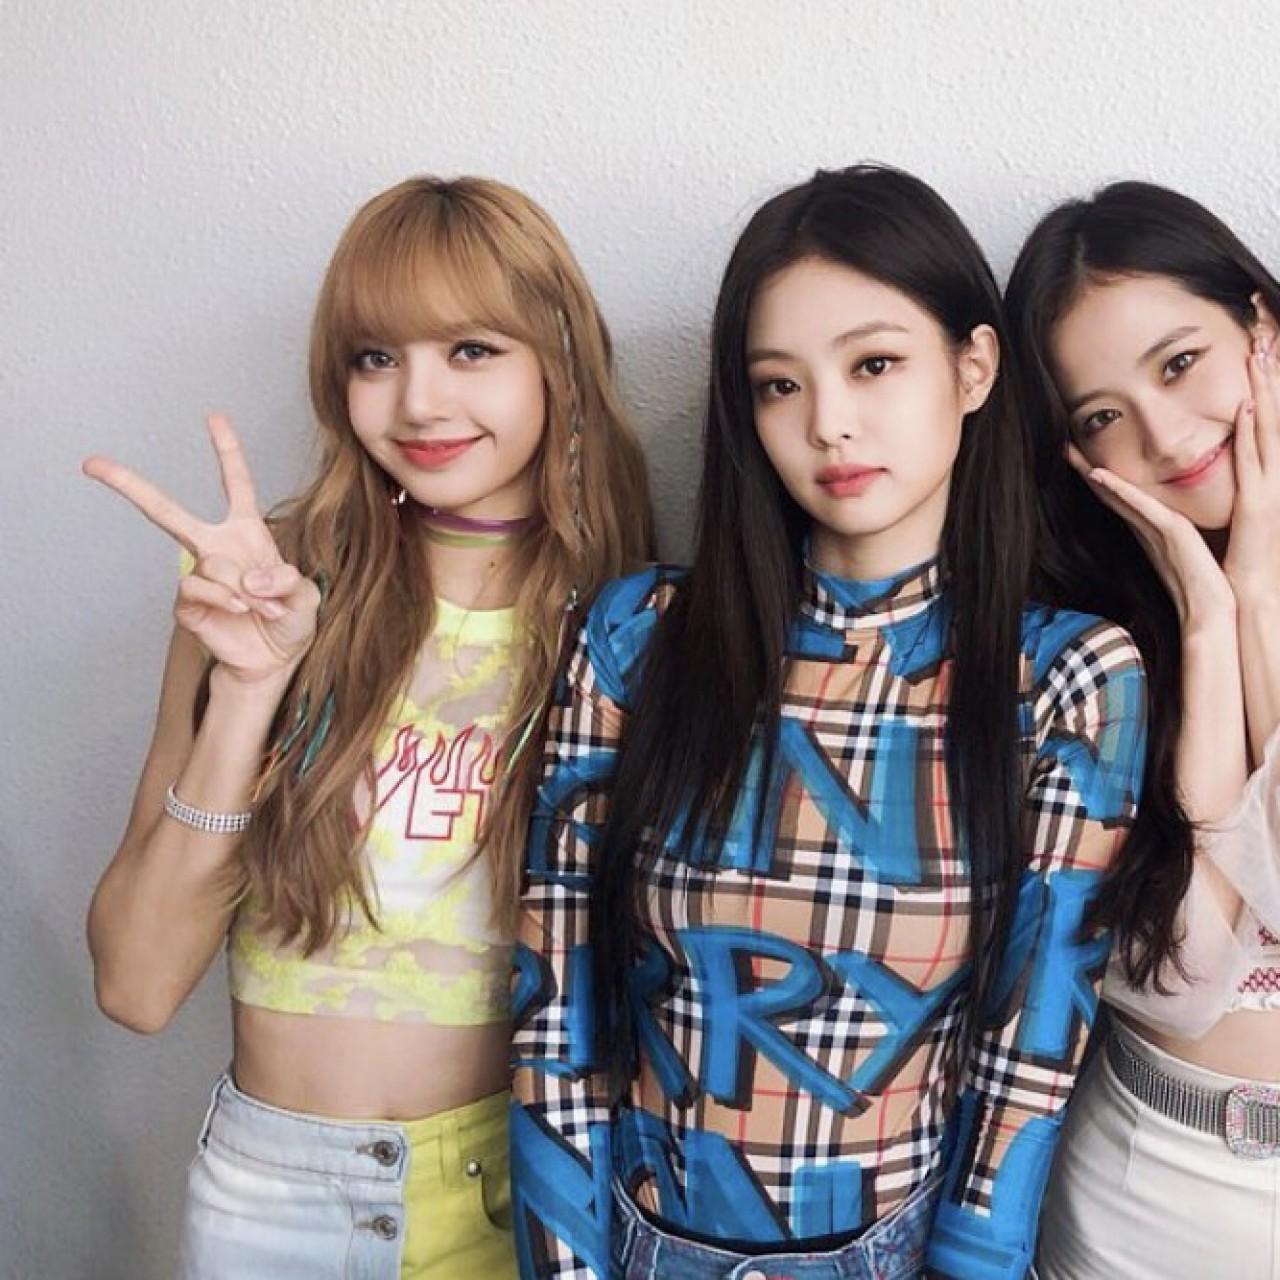 BLACKPINK tops 500 million YouTube views again with 'As If It's Your